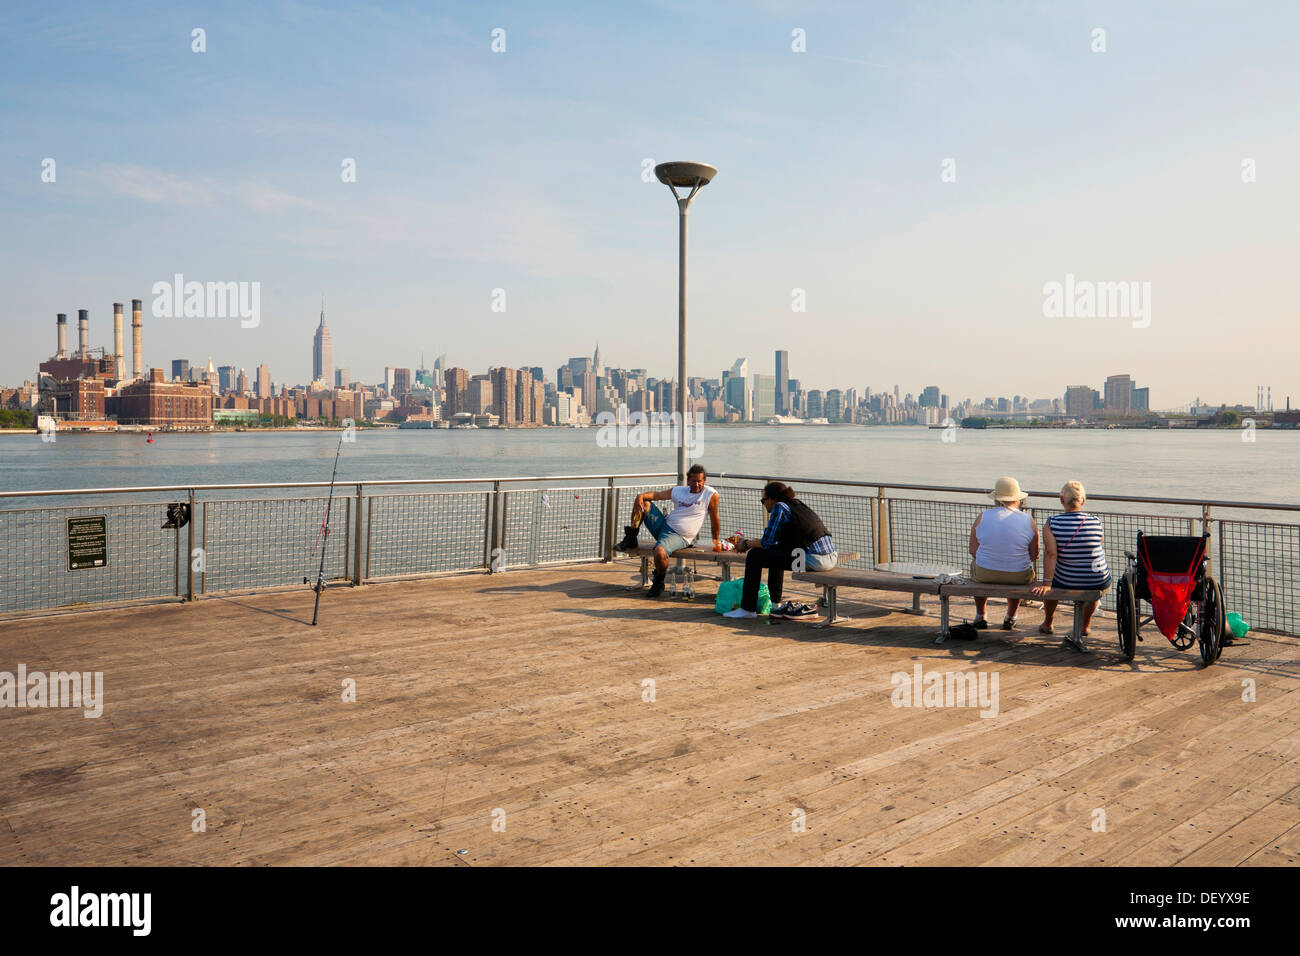 Pier at the shore of Greenpoint, Brooklyn, Manhattan at back, New York City, USA - Stock Image